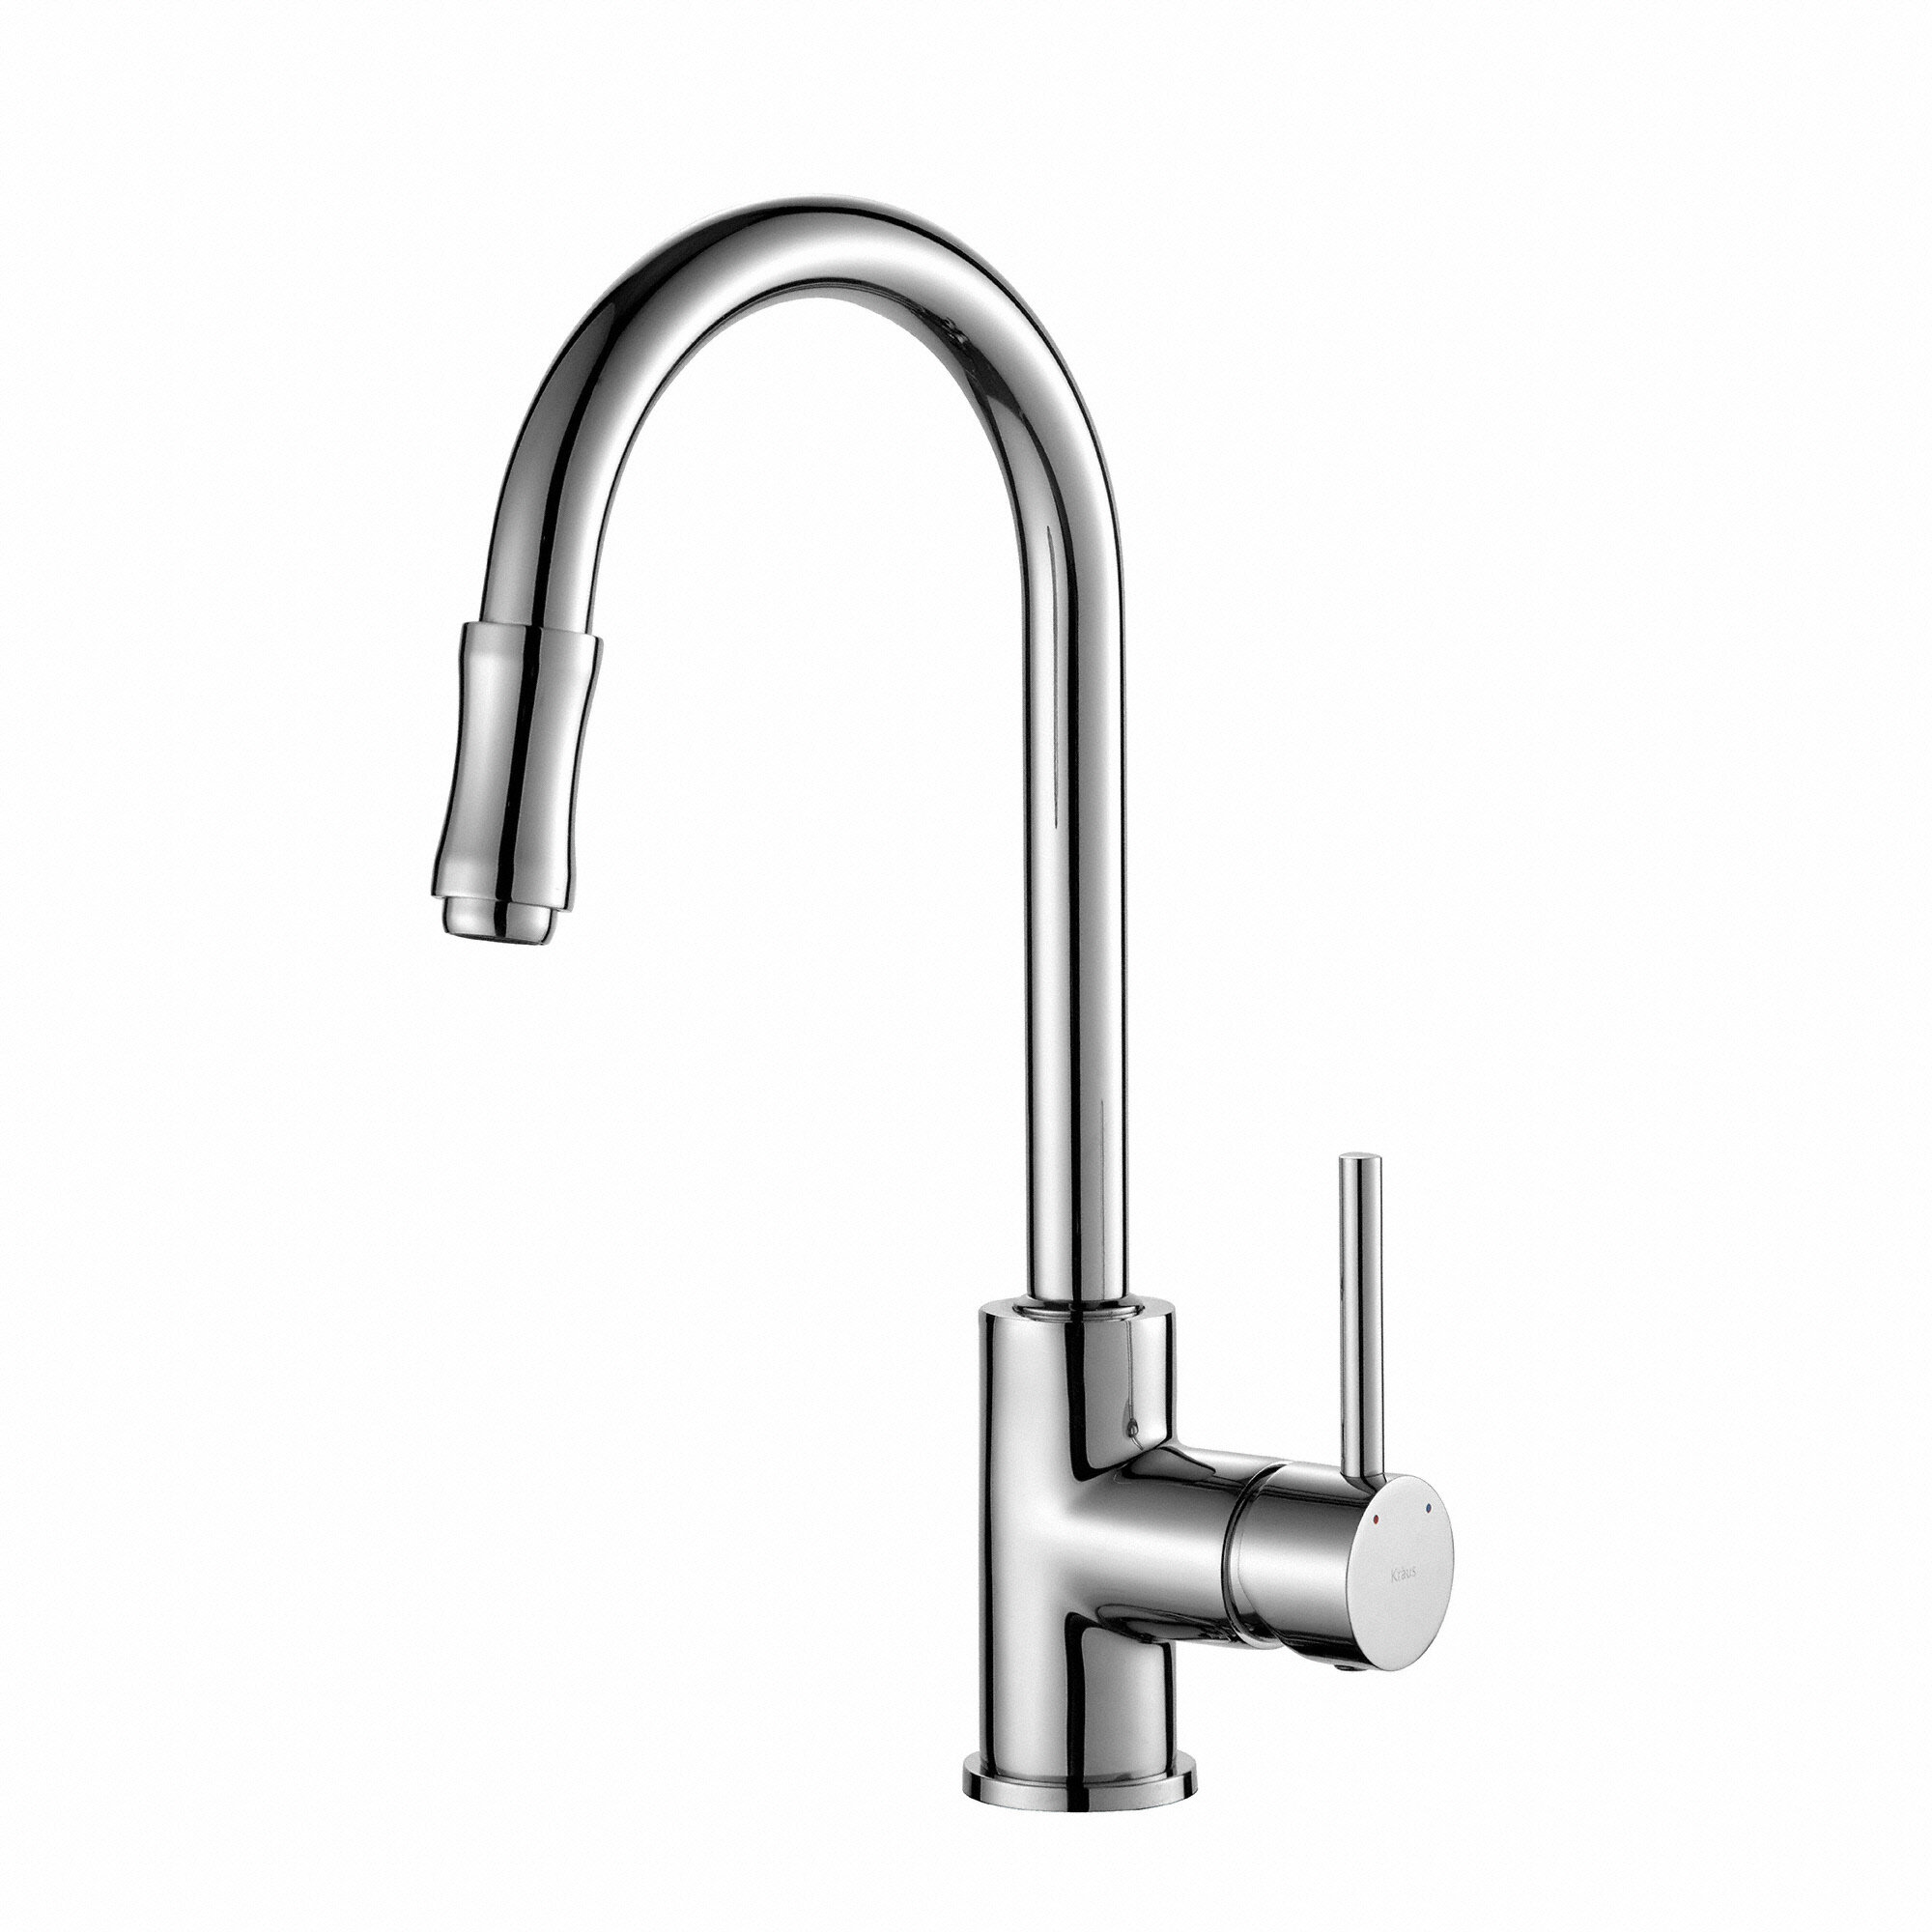 bathroom spray down depot with pfister pull faucet water create home gooseneck delta menards sink ideas your kohler out dream fossett lowes kitchen fauce giagni faucets costco